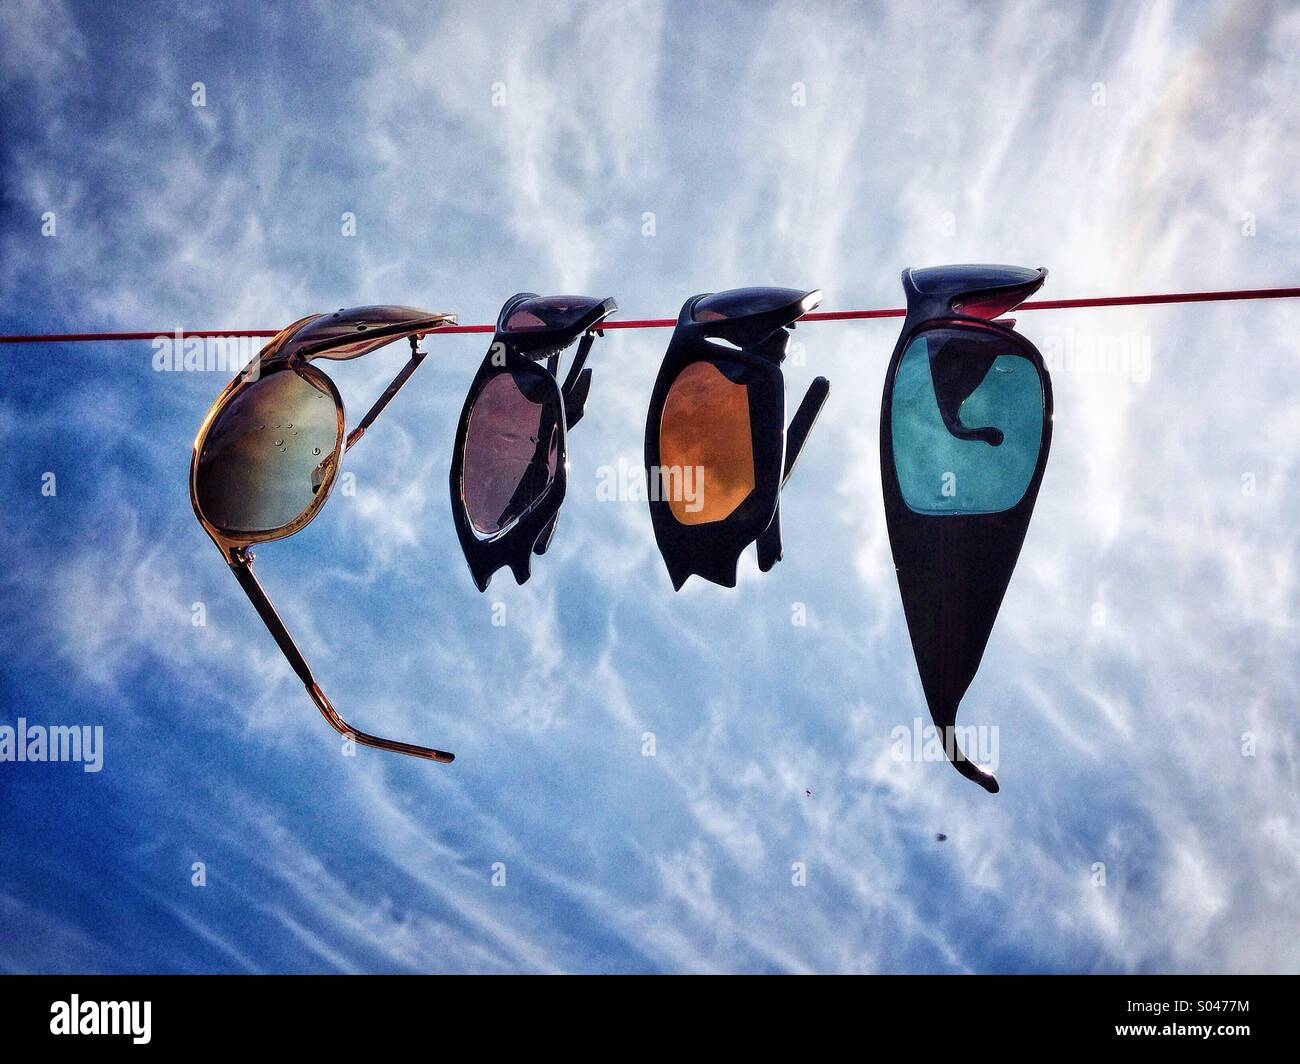 Sunglasses hanging on a washing line - Stock Image